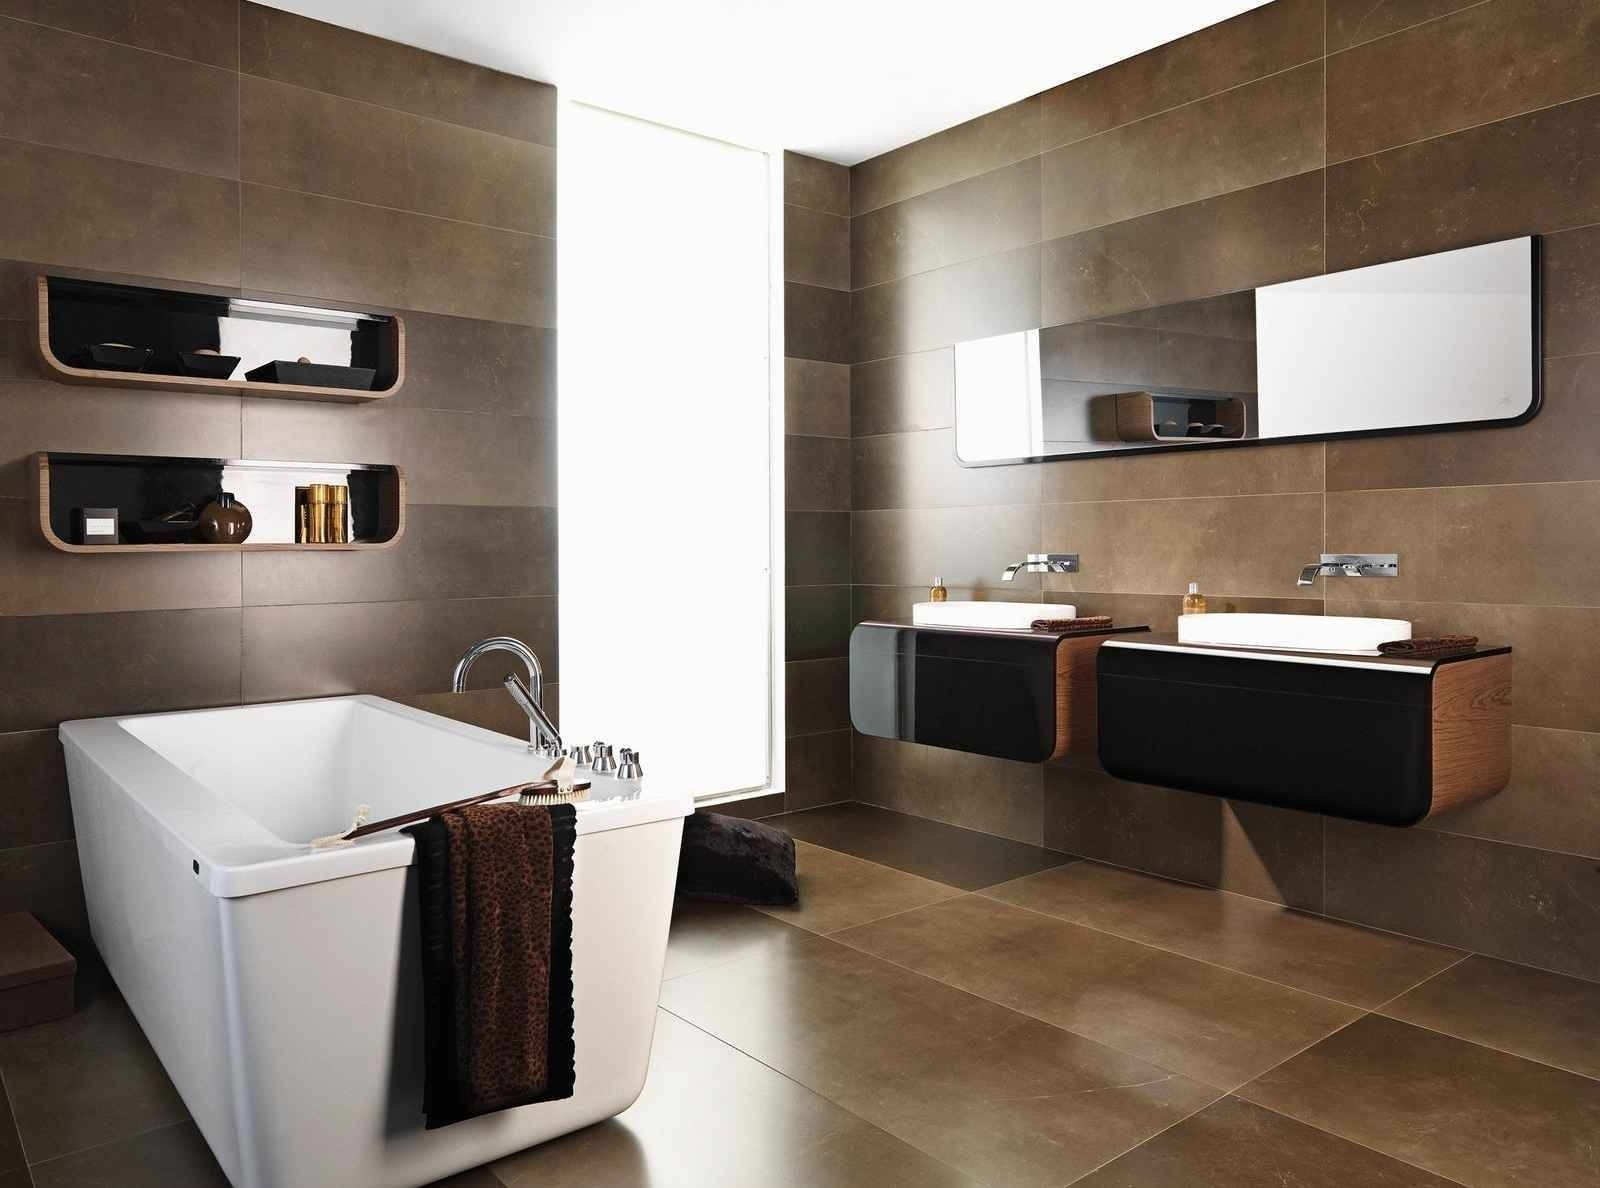 Decor Showroom Perugia  Bagni e rubinetti